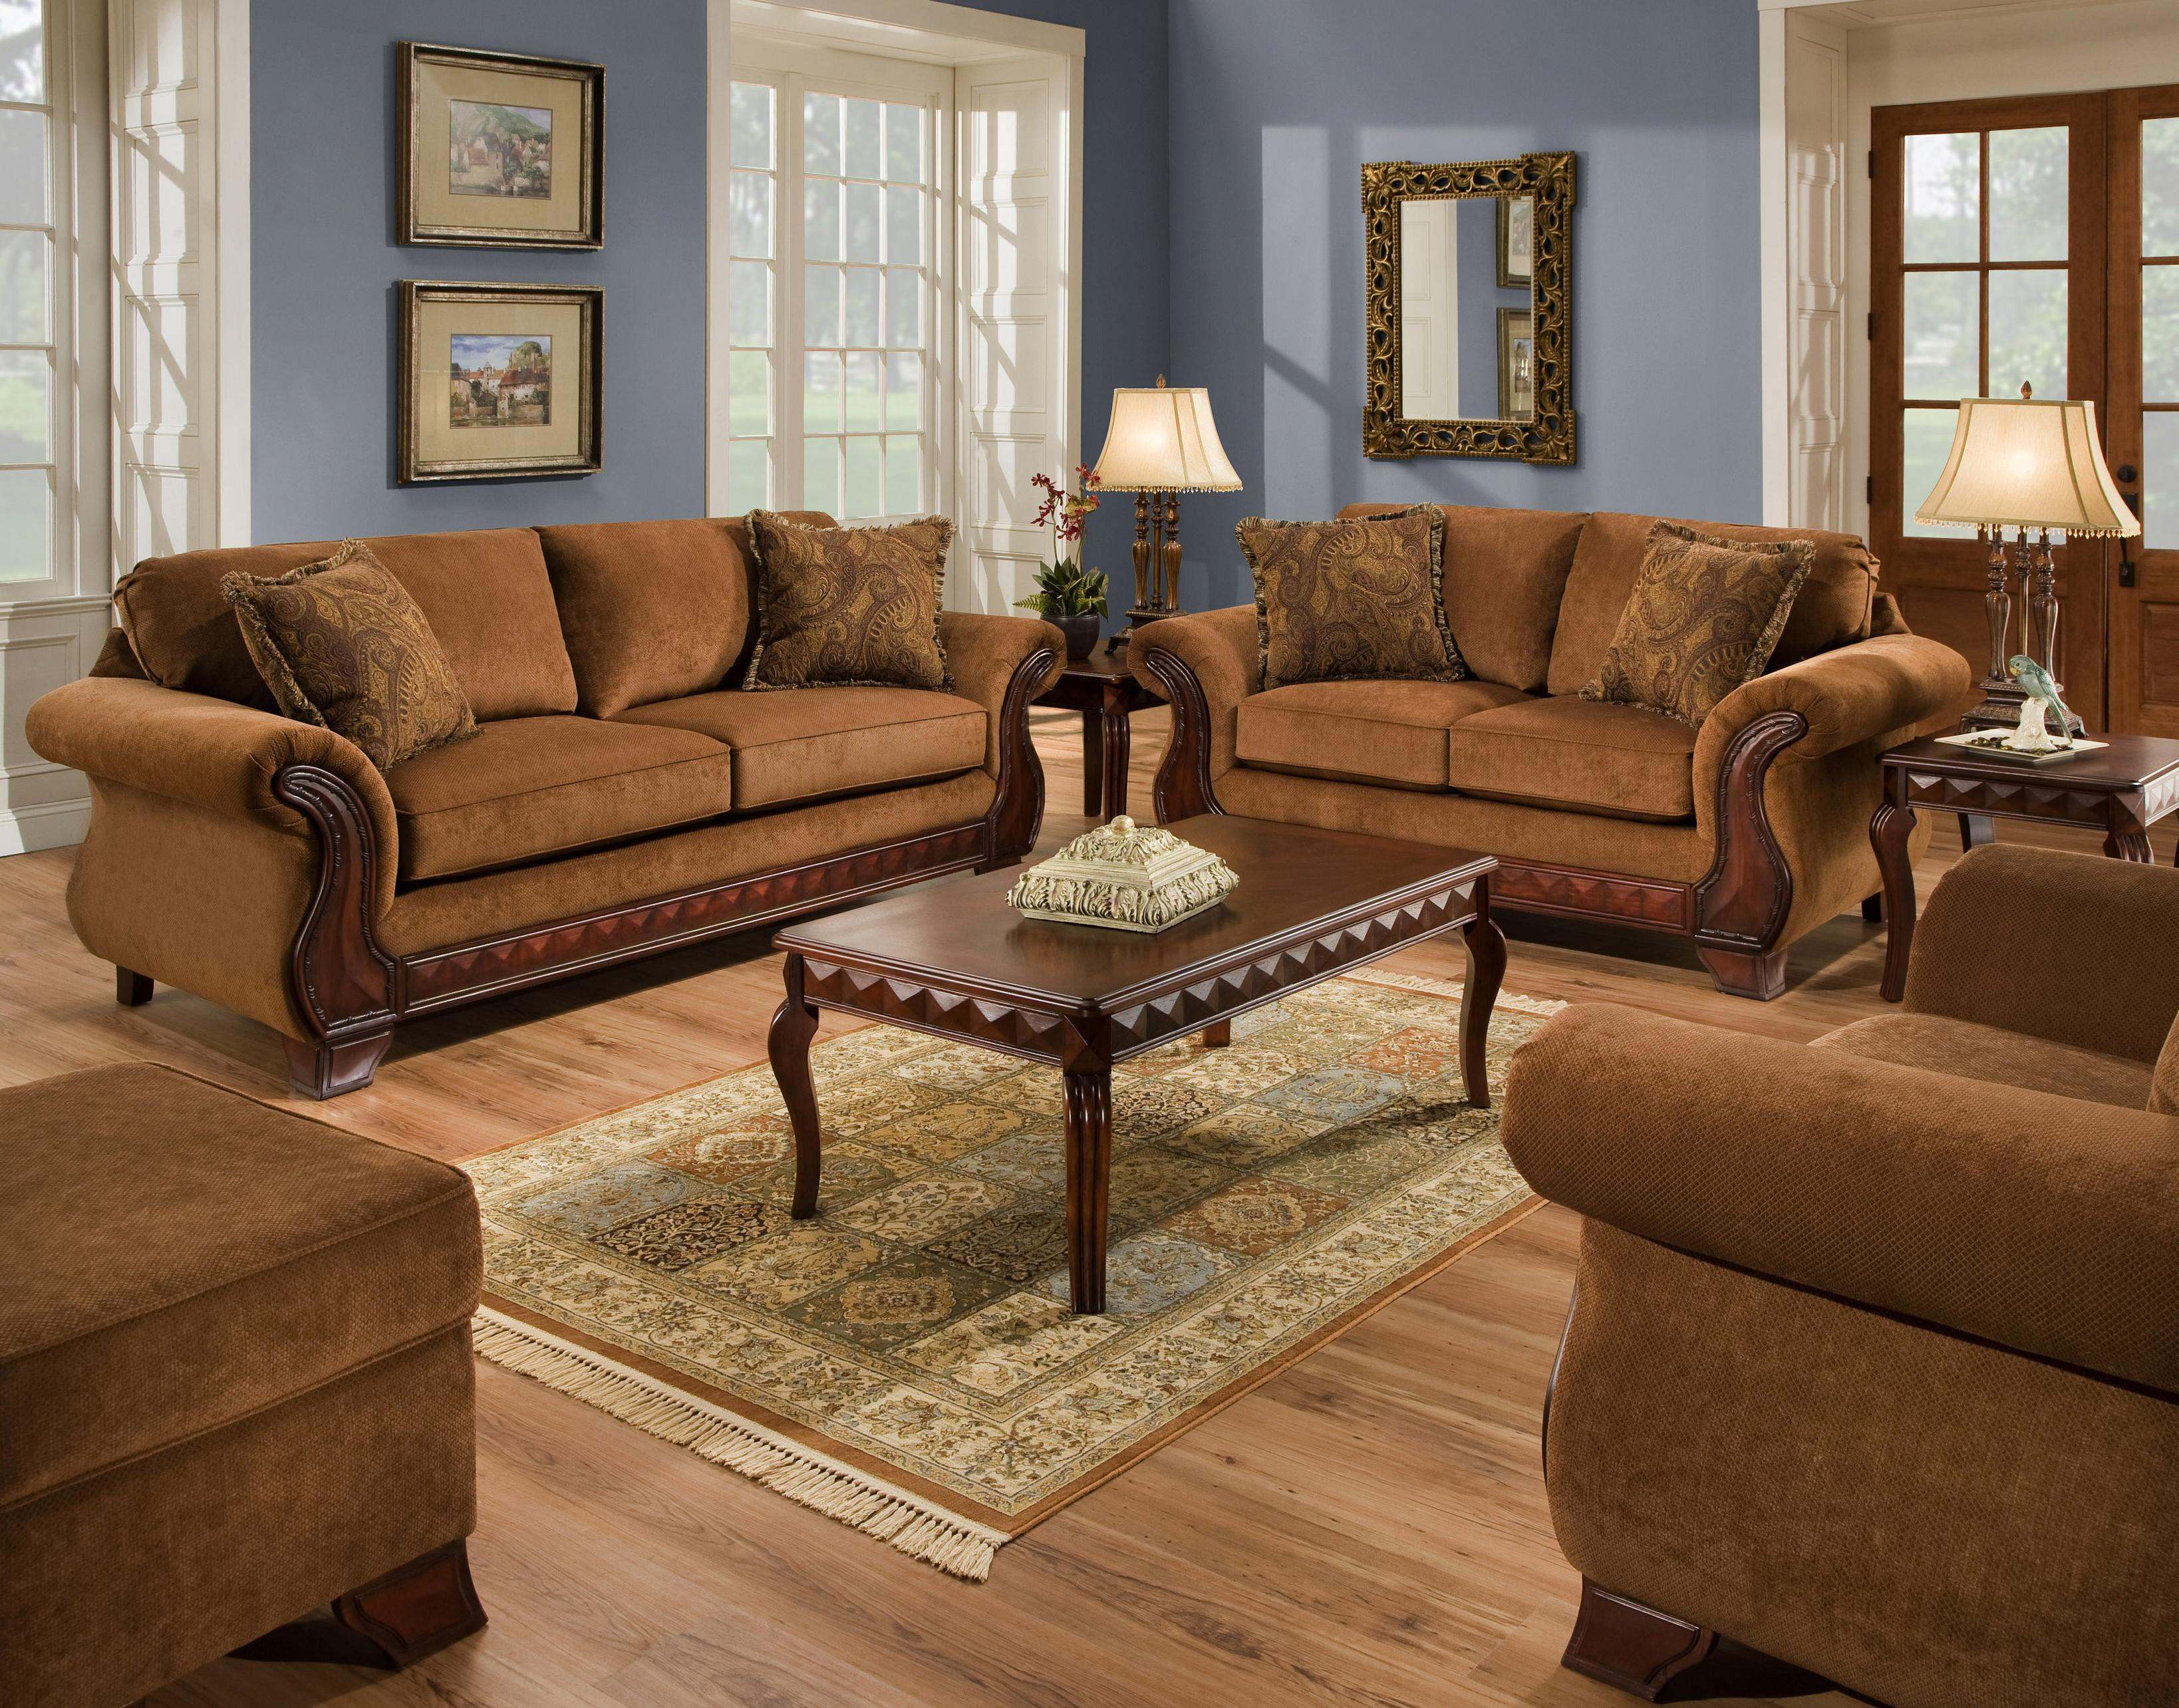 American Furniture 6900 Upholstered Loveseat With Exposed Wood Frame Prime Brothers Furniture